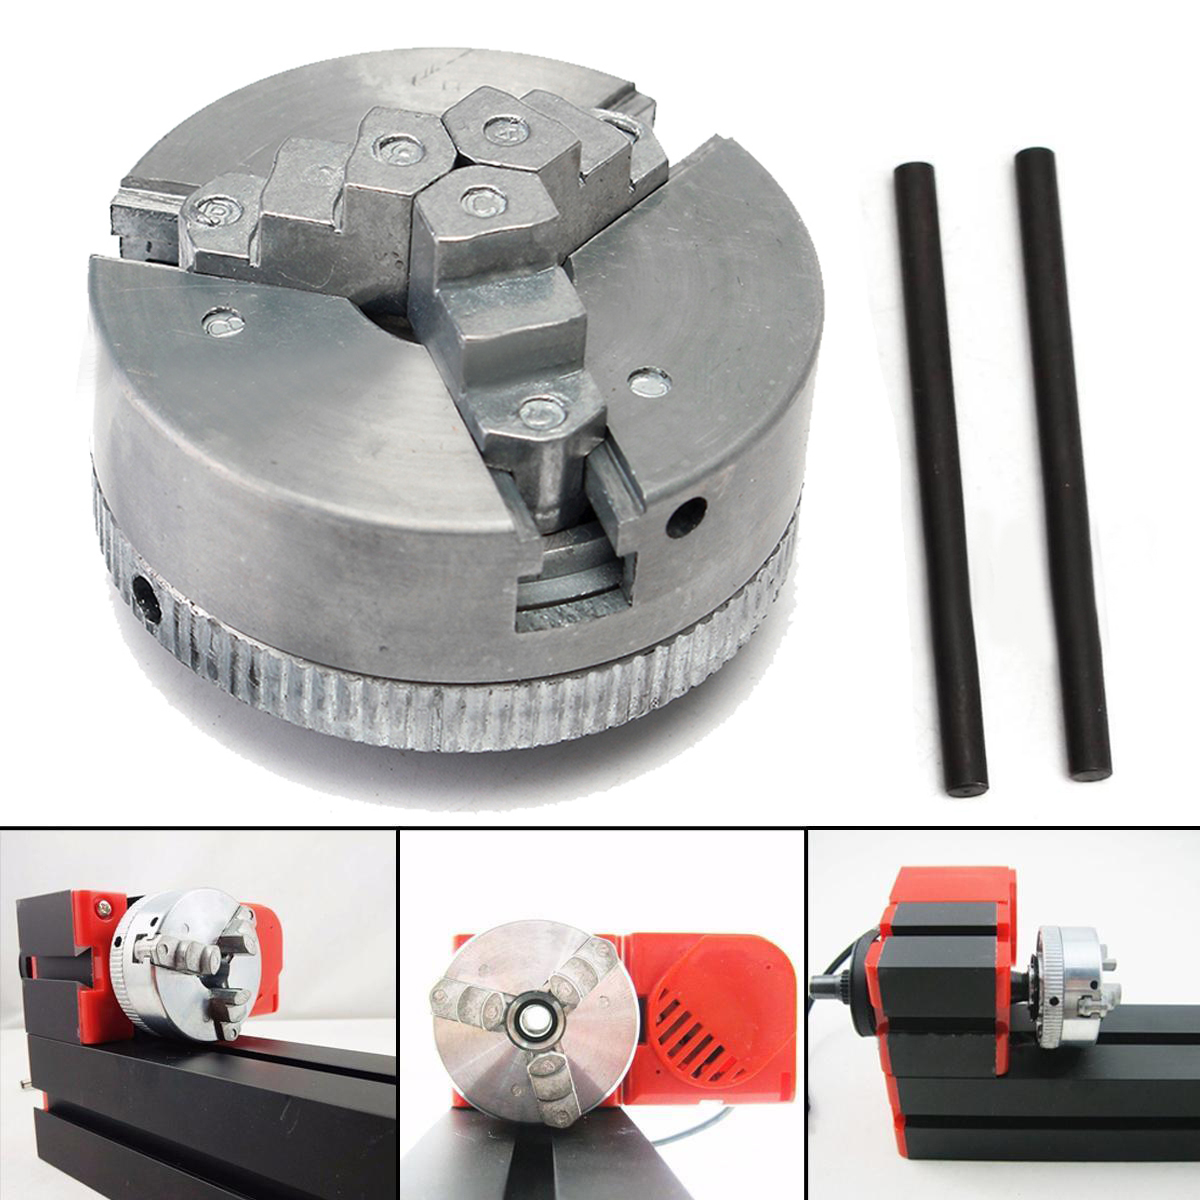 1pc 3 Jaw Lathe Chuck Metal Self Centering Hardened Chuck M12x1 45mm + 2pcs Lock Rods with Shock Resistance внешний аккумулятор hiper rp15000 15000mah черный